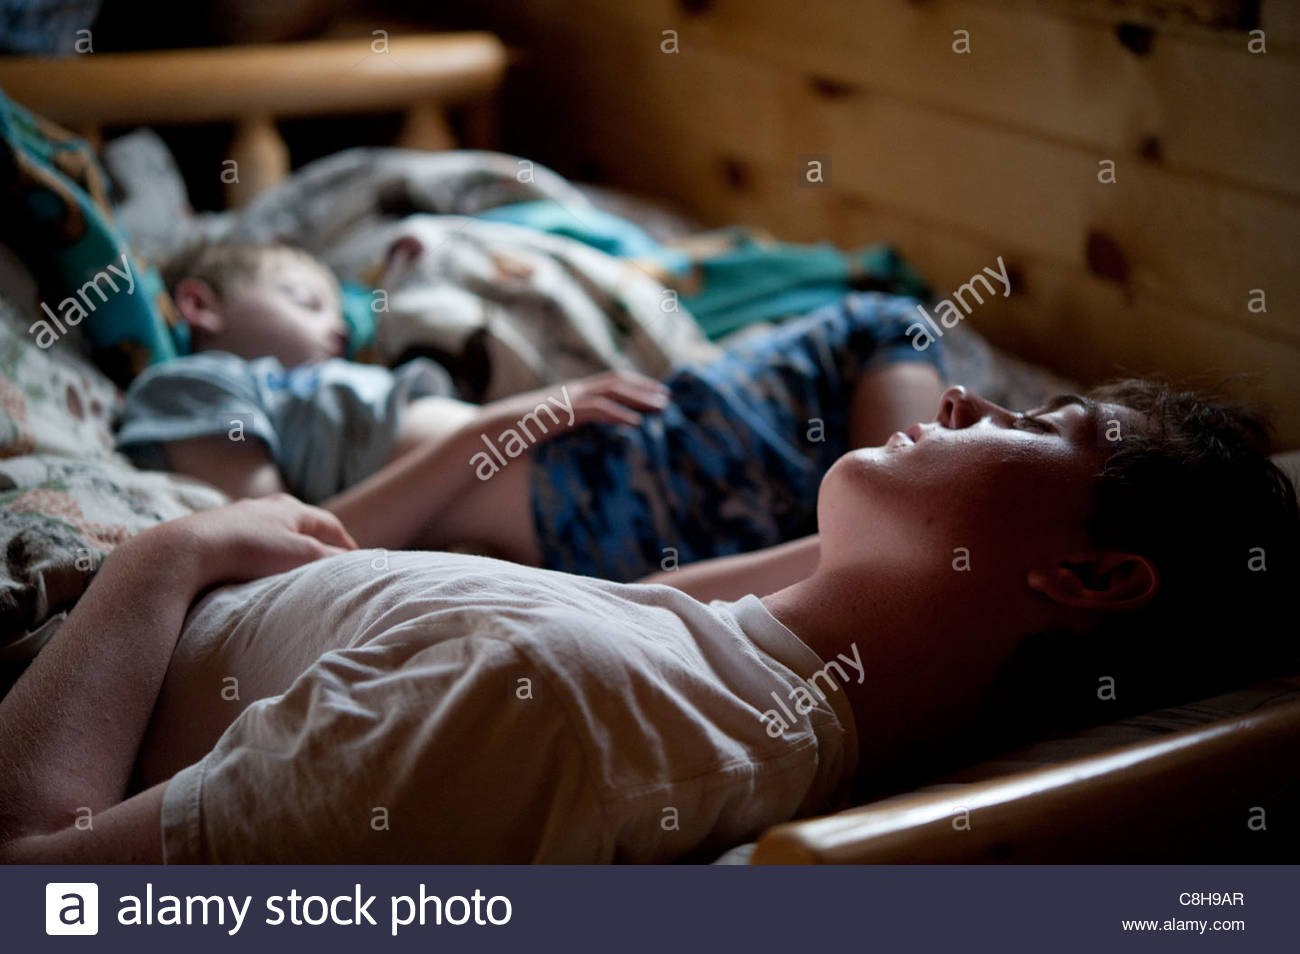 Two siblings take a nap while on vacation in Crosslake, MN. - Stock Image